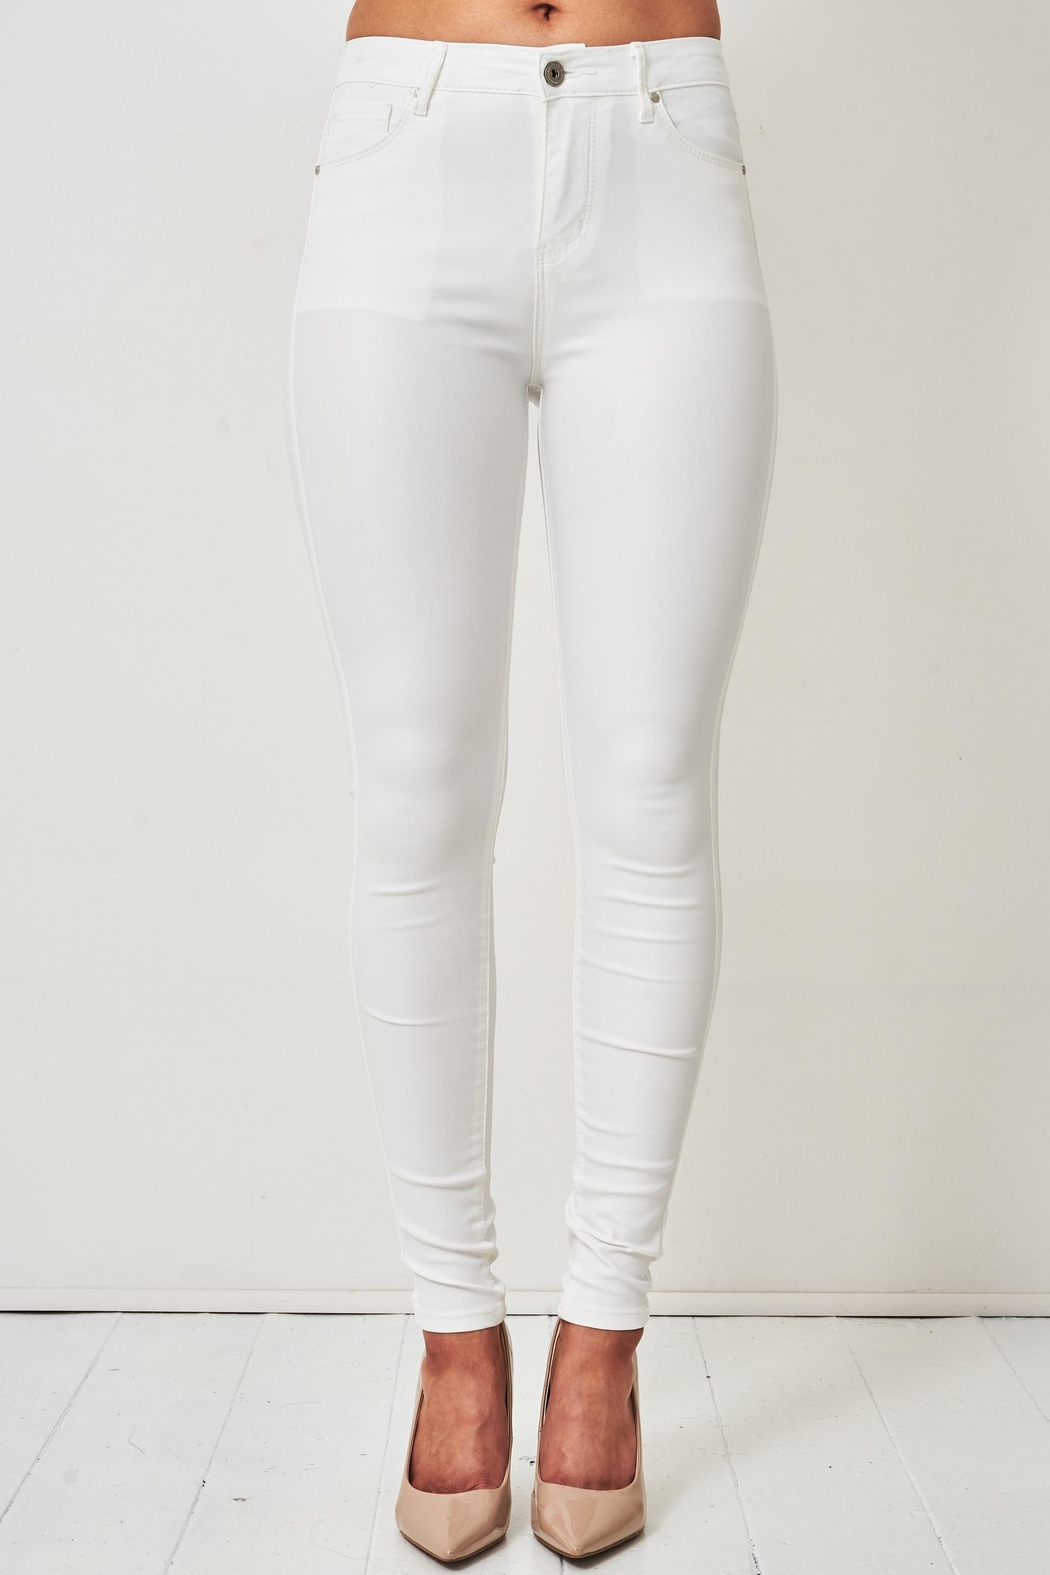 frontrow White Wax-Coated Jeans - Main Image